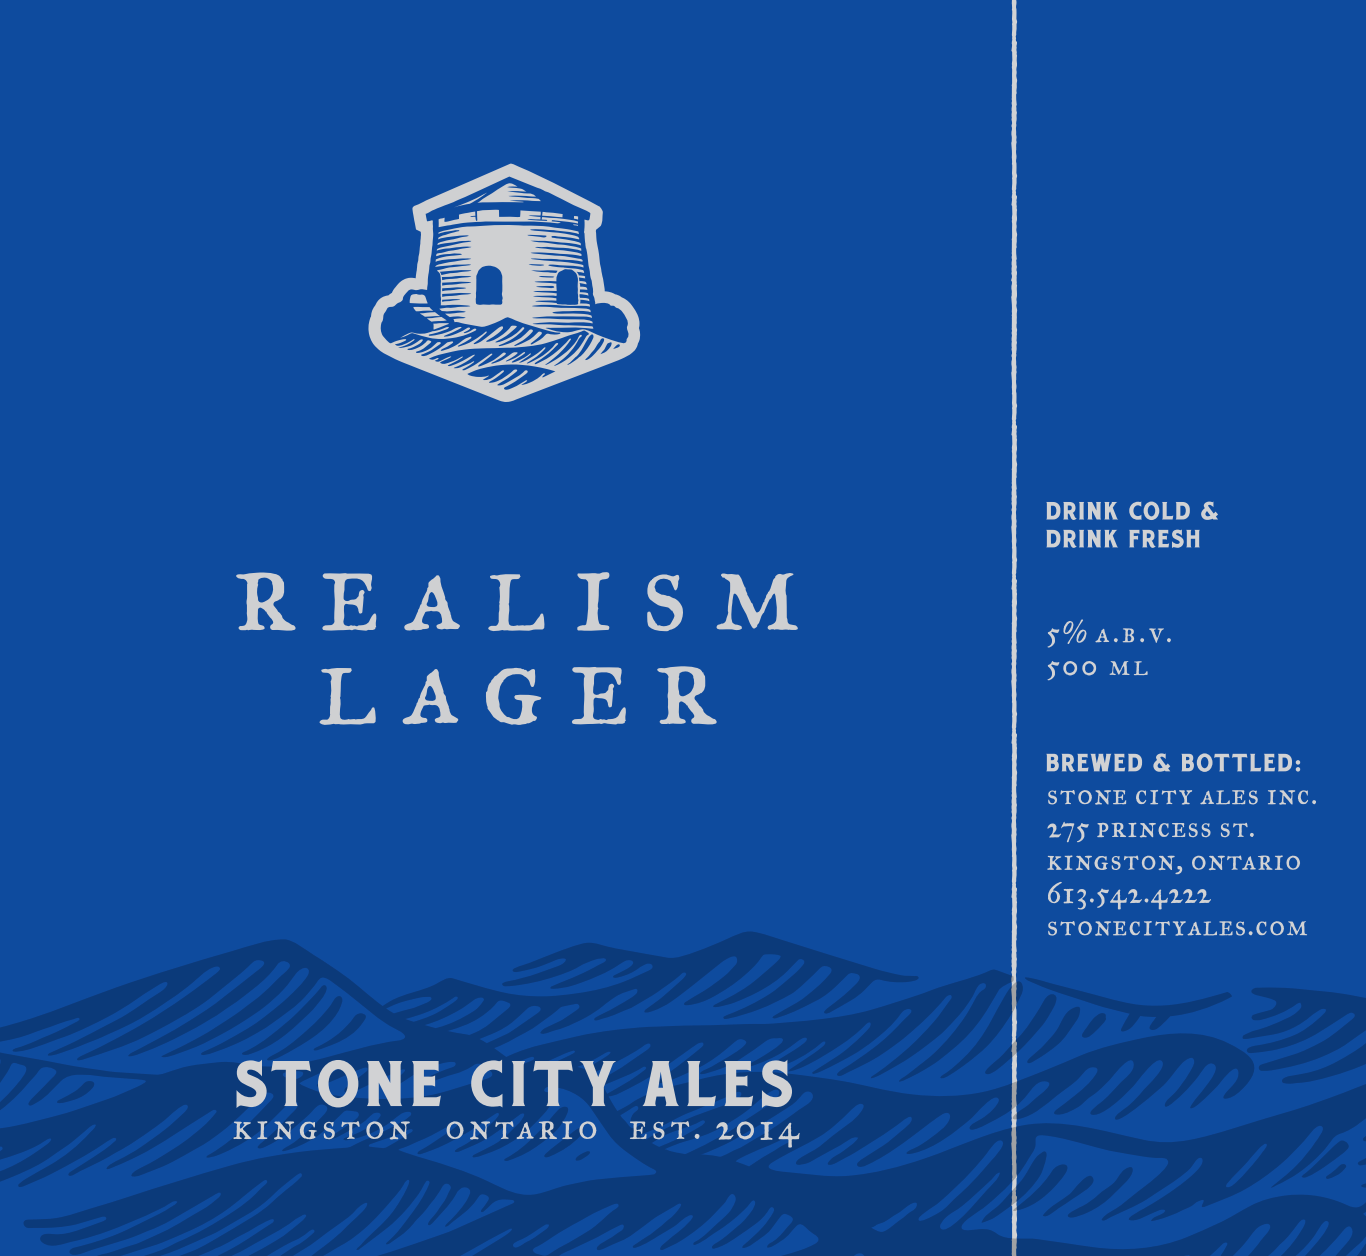 Realism Lager